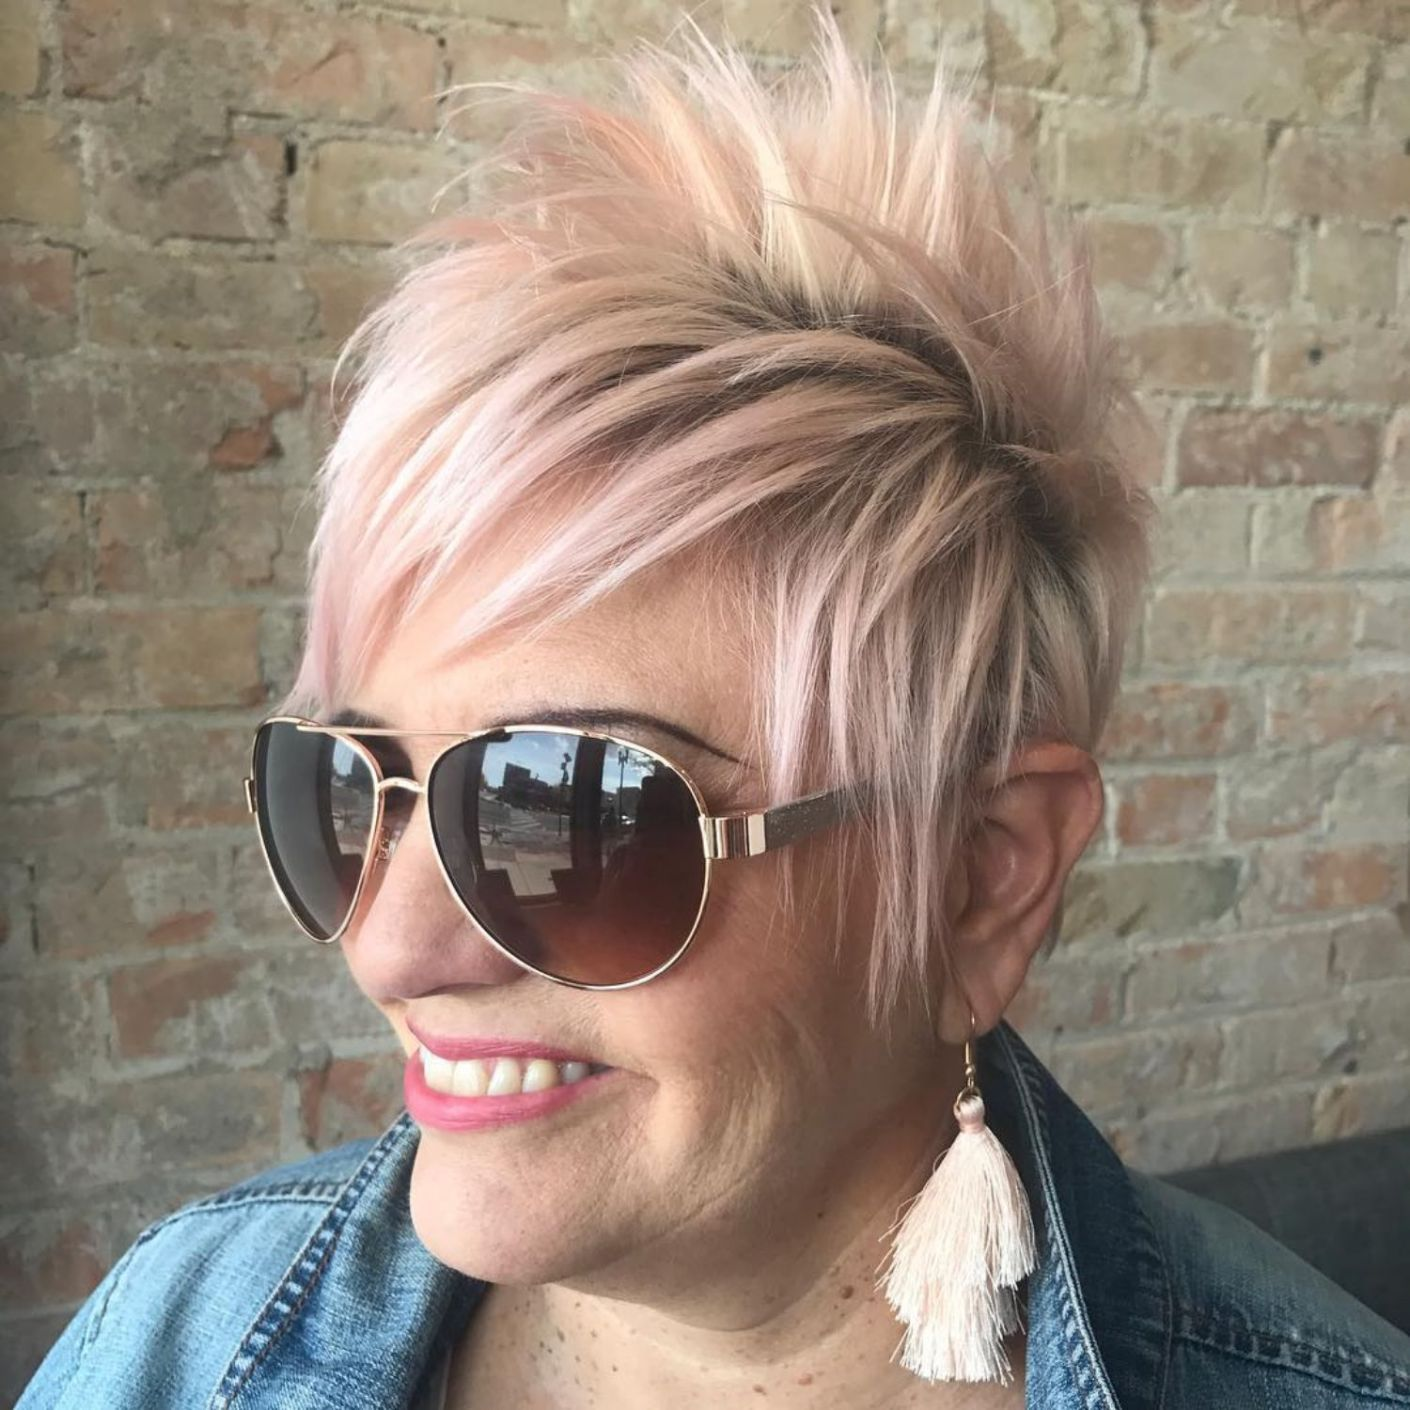 10 Fresh Looking Short Haircuts with Bangs for Older Women (Updated 2021) 9edfedaac84835f018e251fef4d49d92